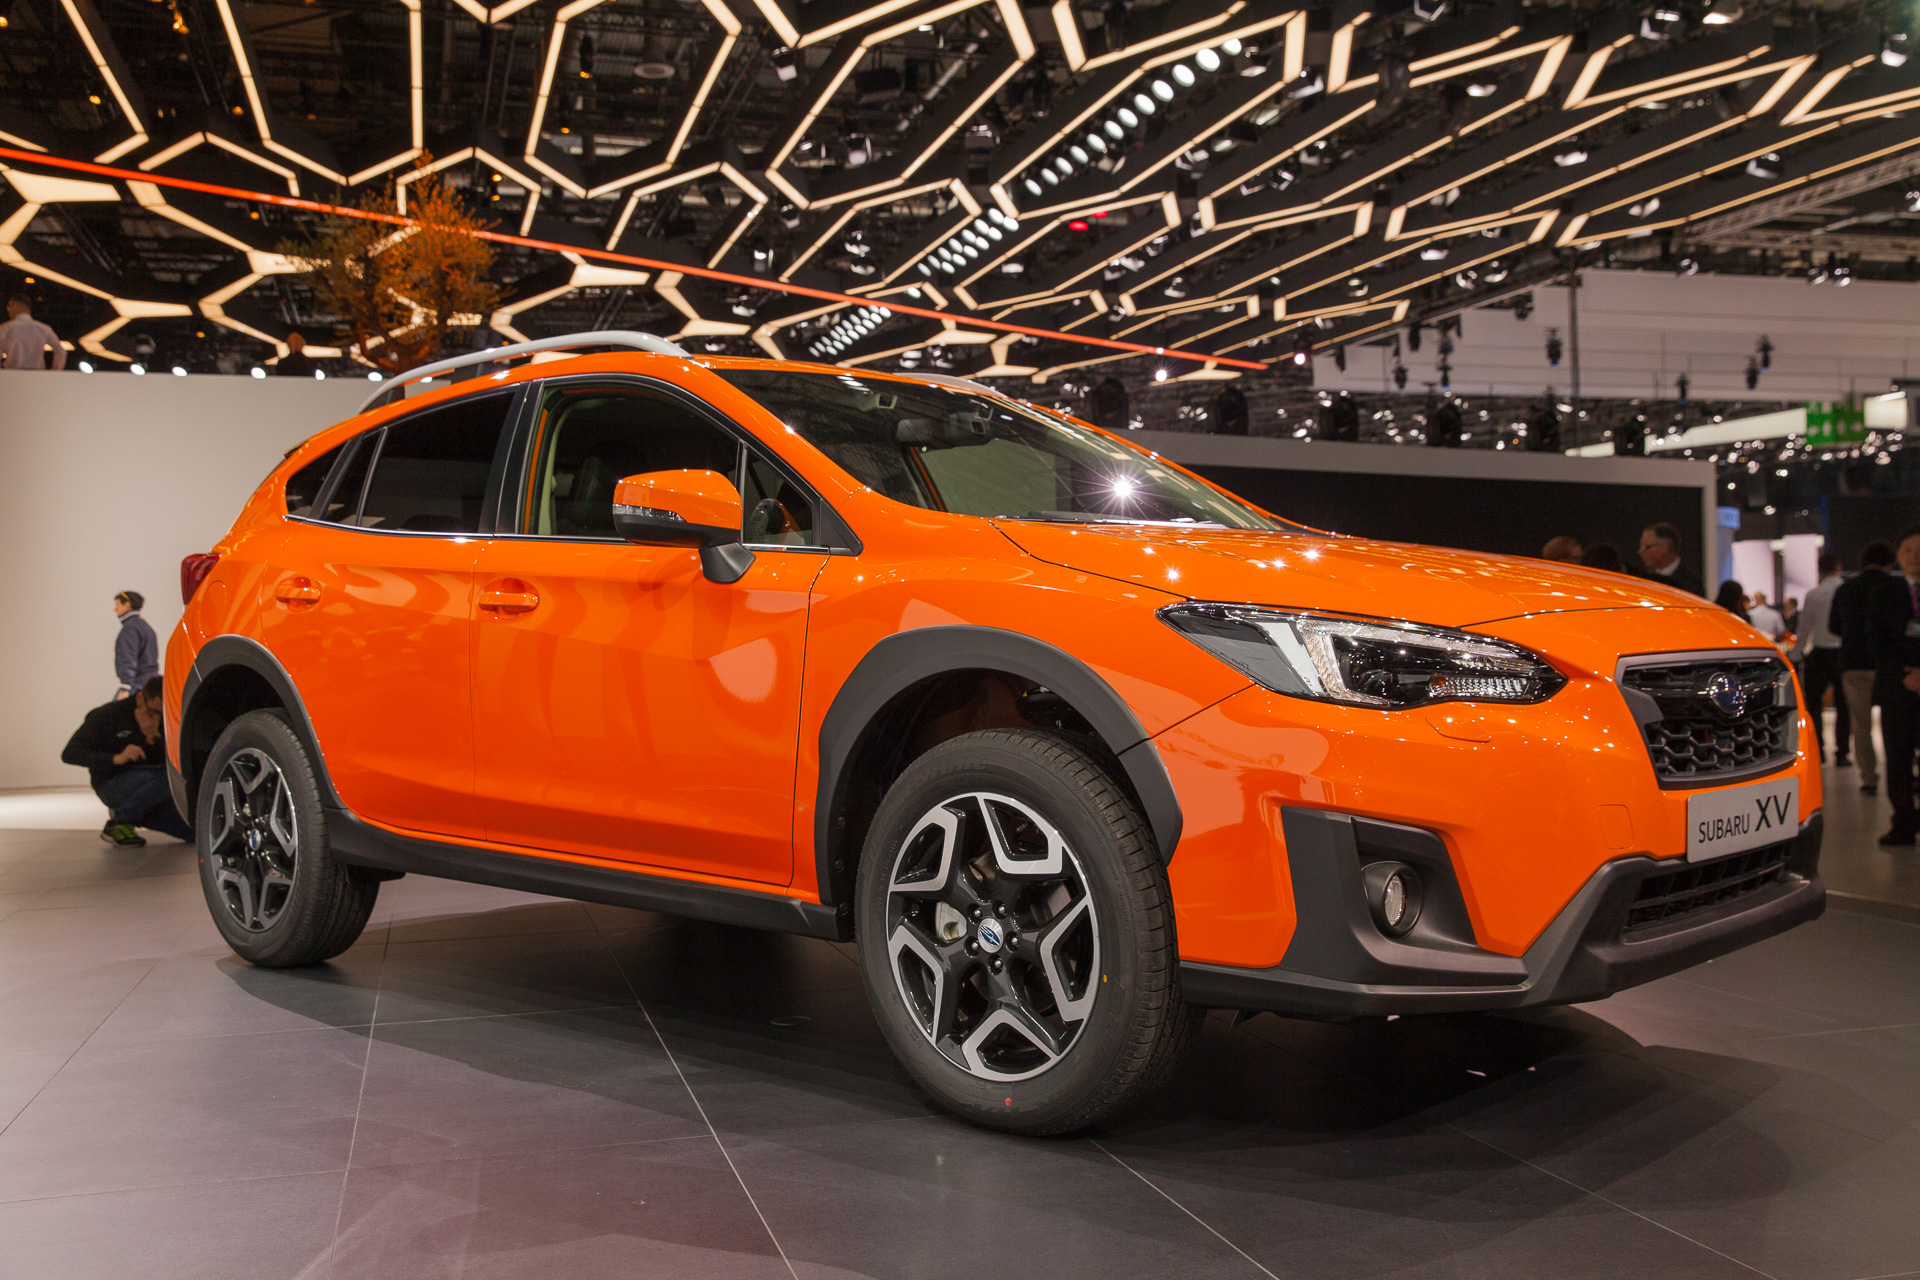 2018 Subaru Crosstrek priced from $22 710 kayak not included